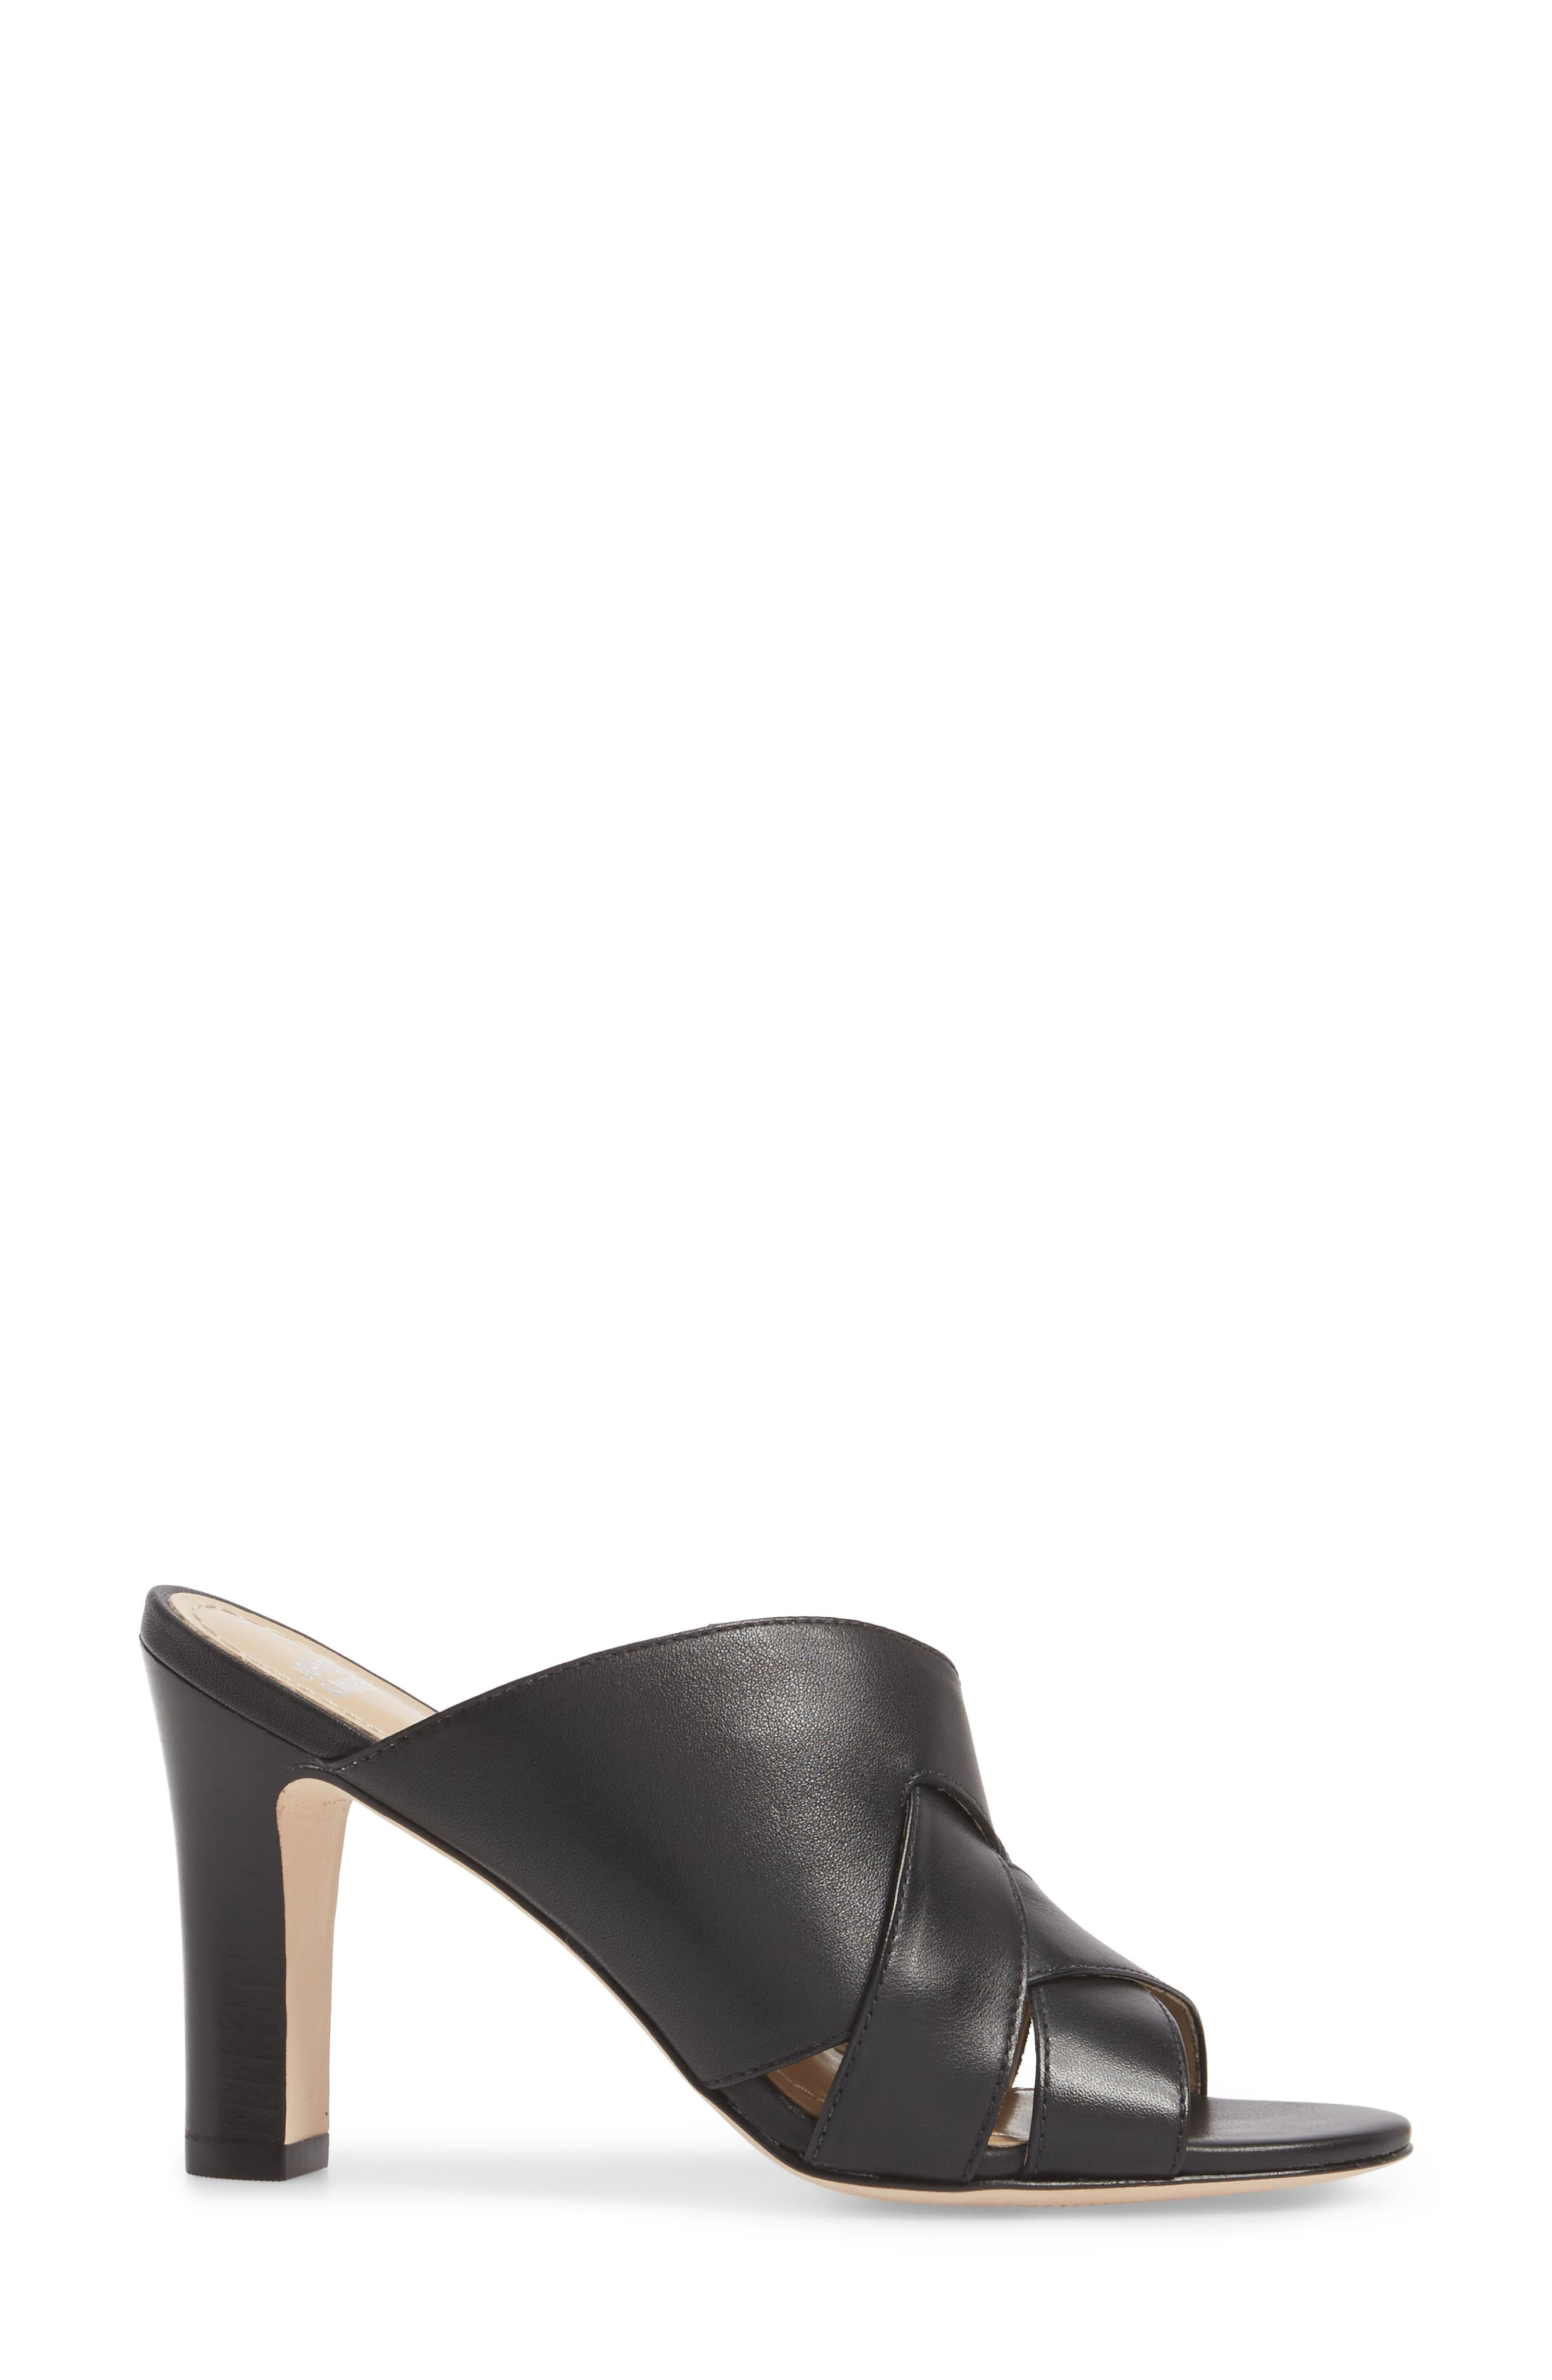 Carrie Mule Sandal,                             Alternate thumbnail 3, color,                             BLACK LEATHER